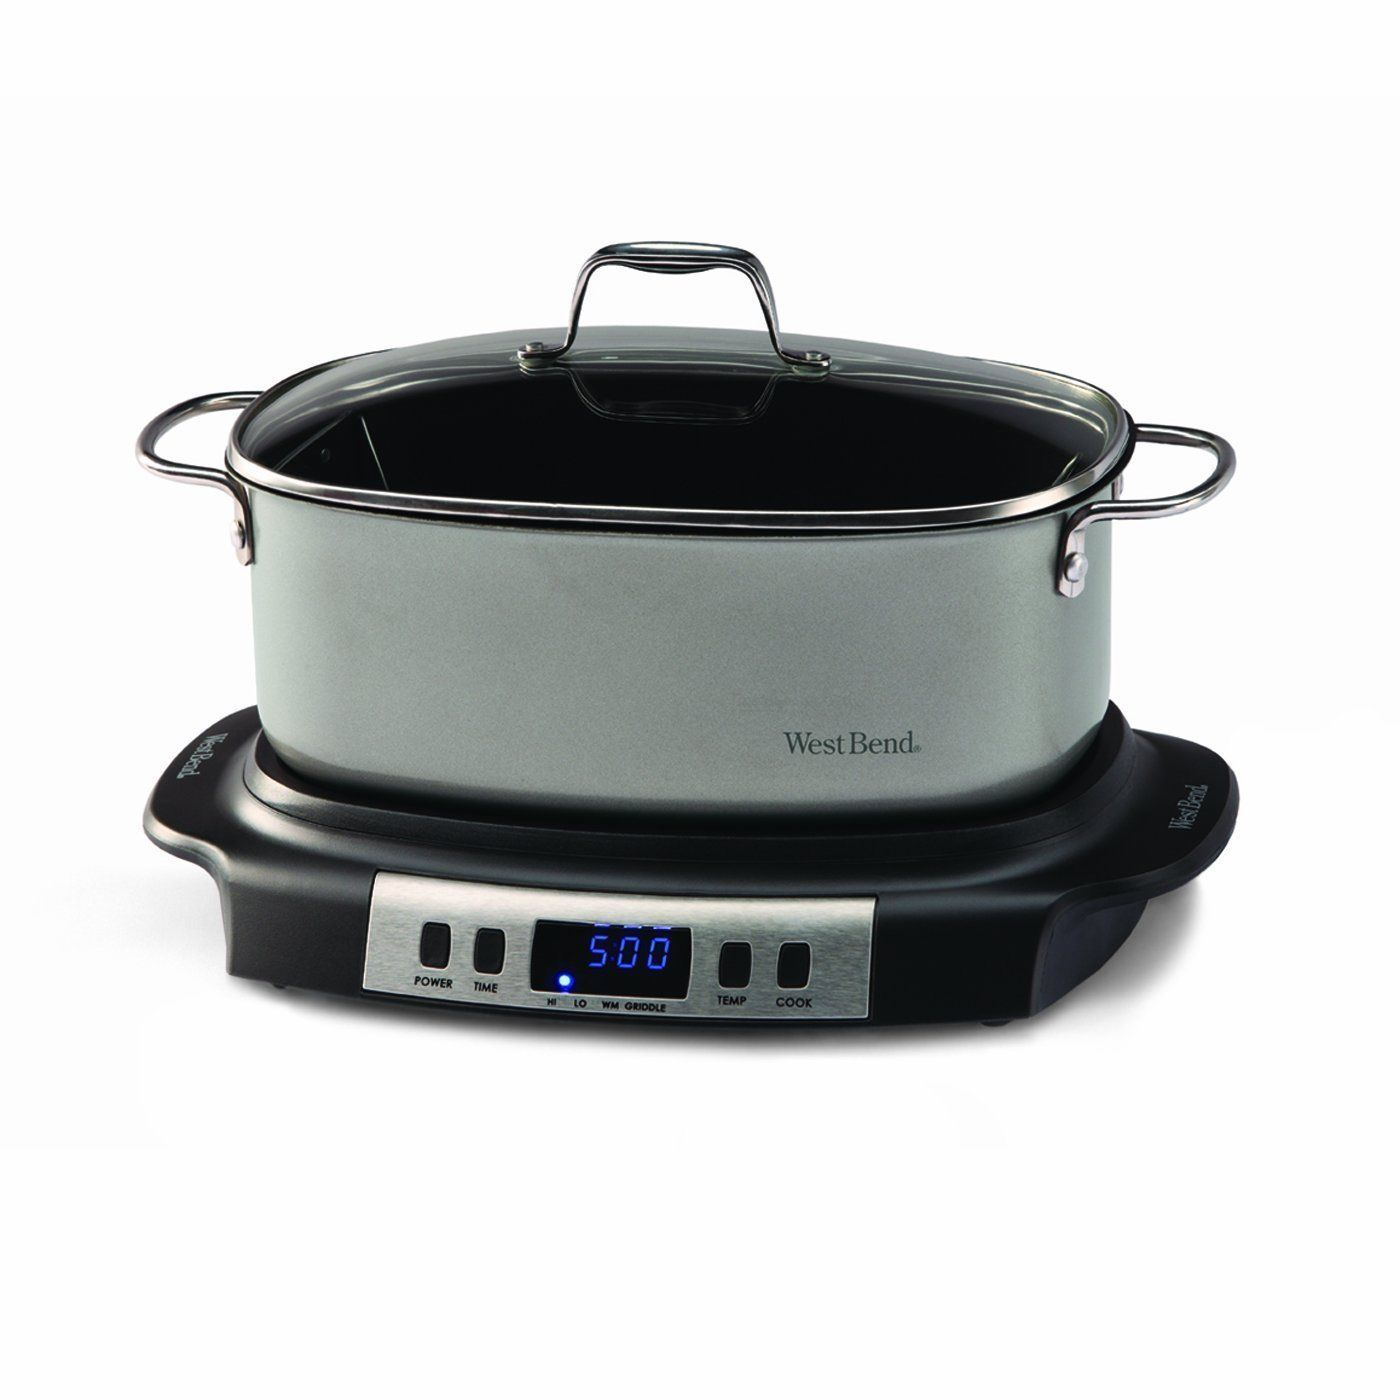 Uncategorized West Bend Kitchen Appliances west bend 84966 versatility oval shaped 6 quart programmable explore slow cooker best and more